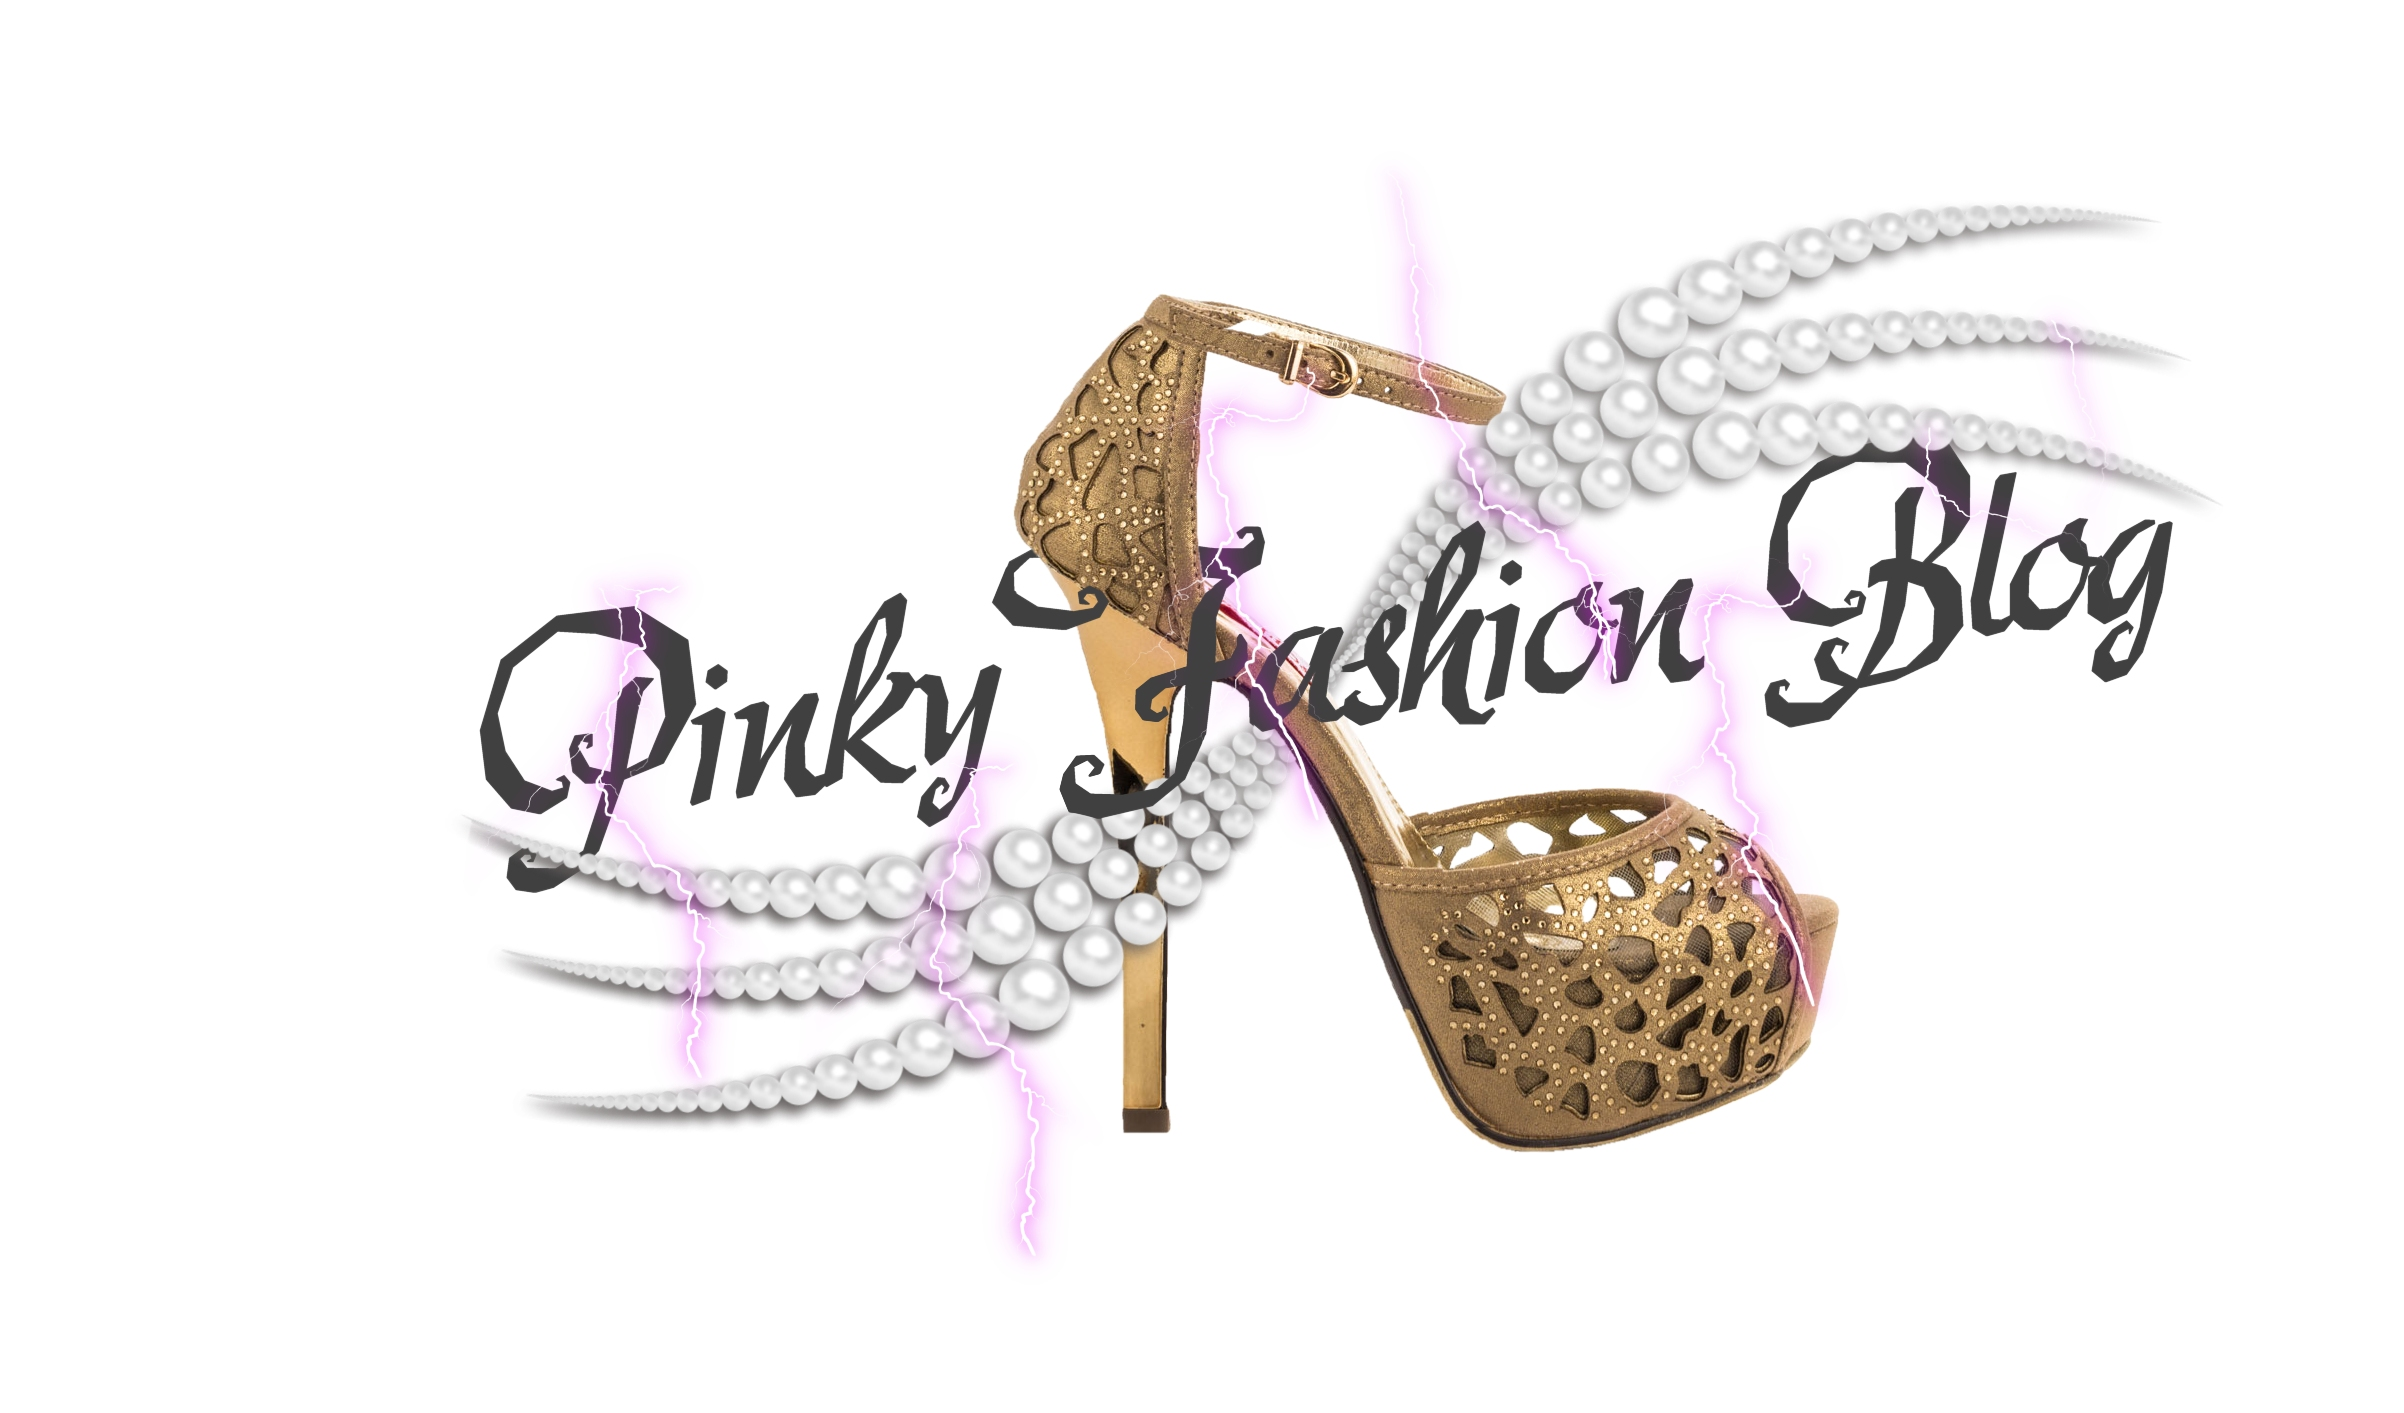 Pinky Fashion Blog